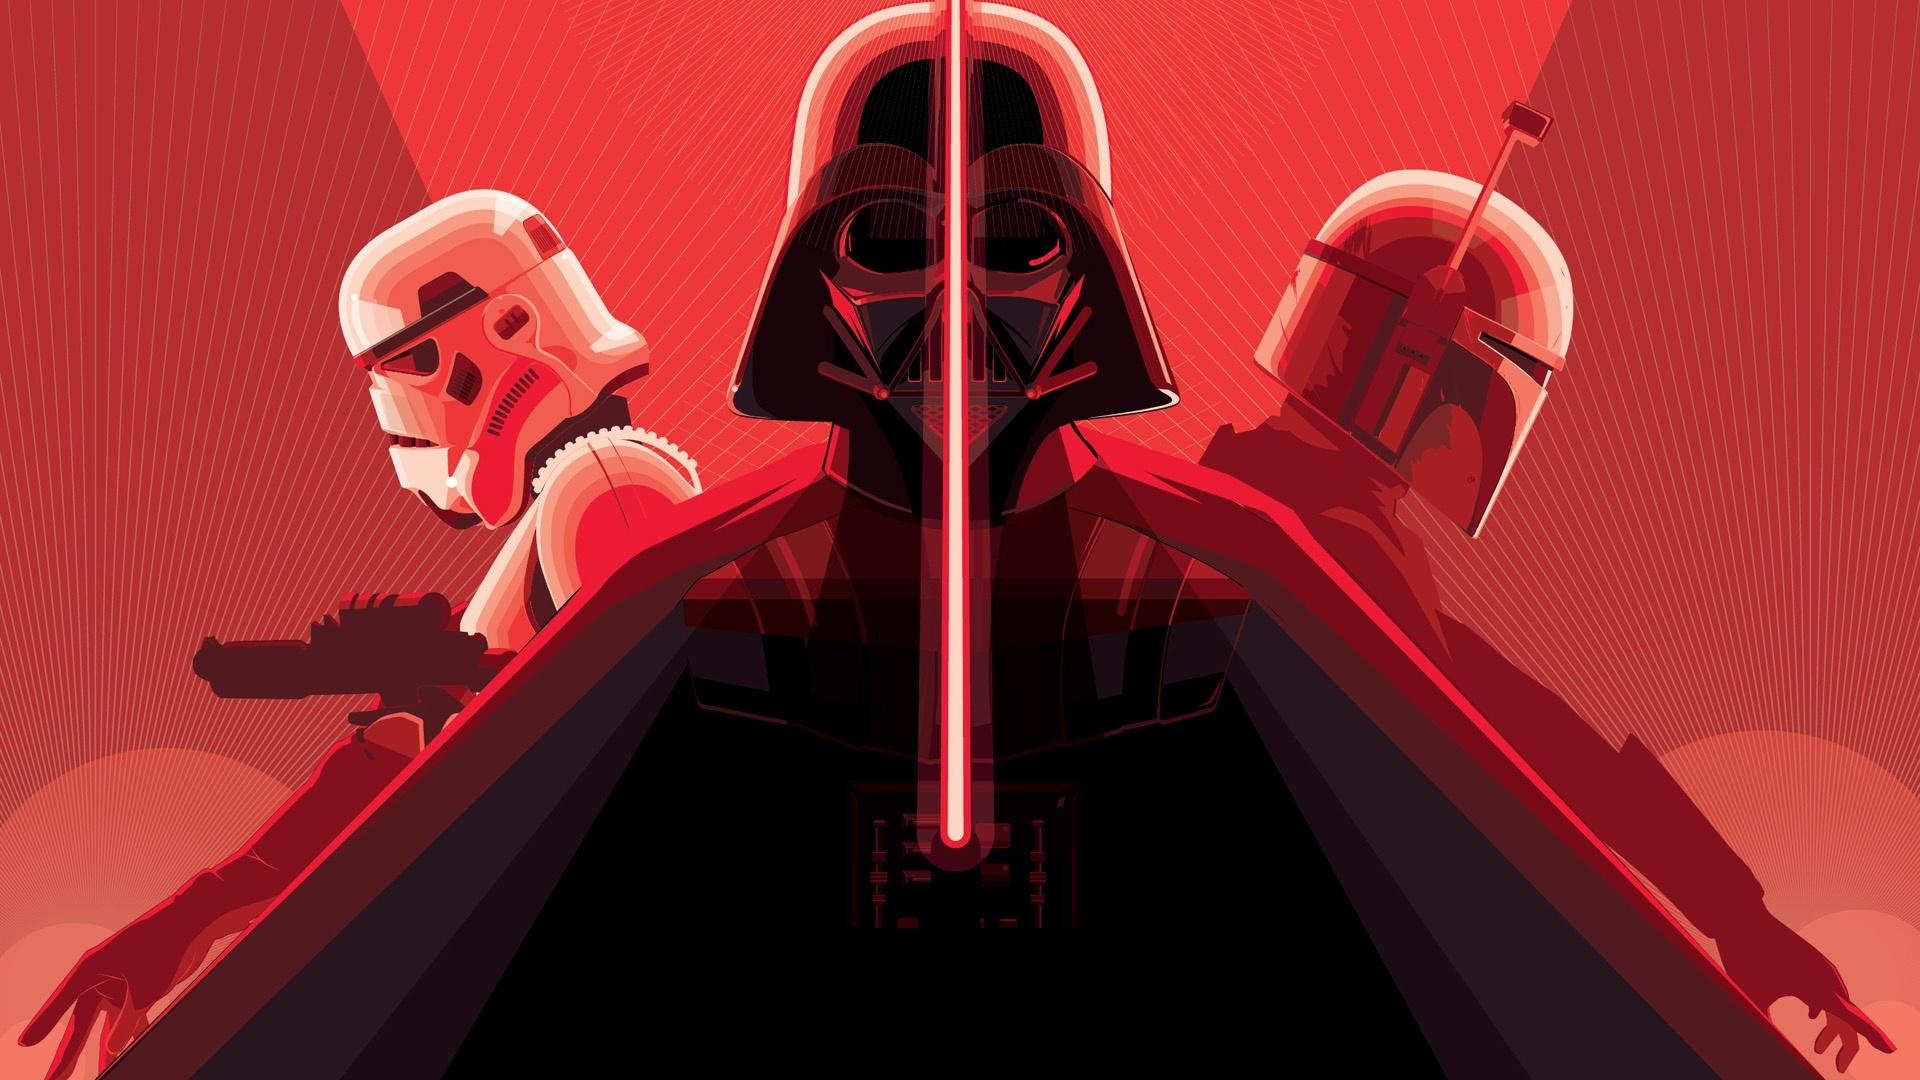 Darth Vader Star Wars Wallpapers And Themes For New Tab Page